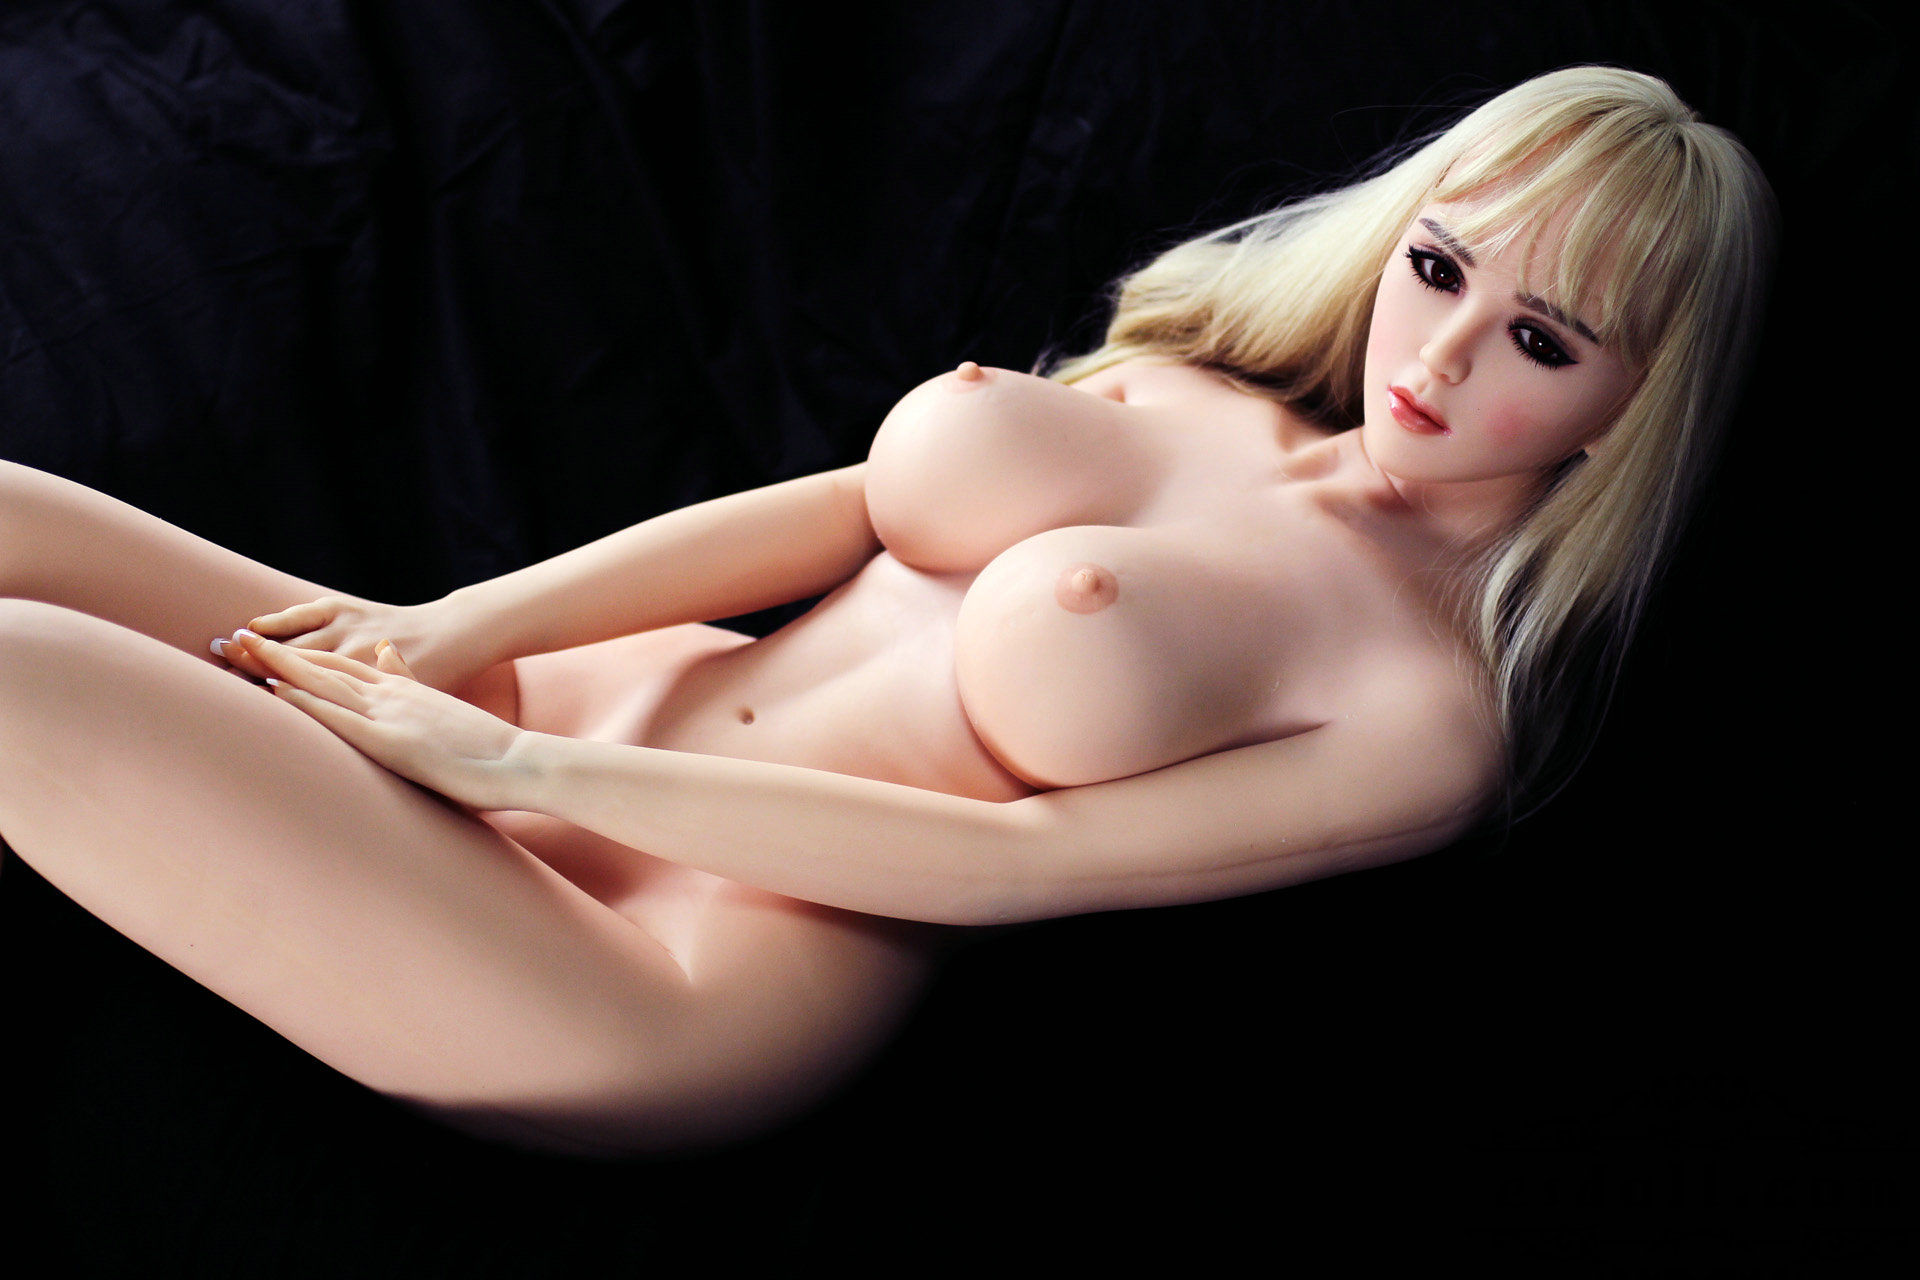 165cm 5.41ft Ivy sex doll - 4